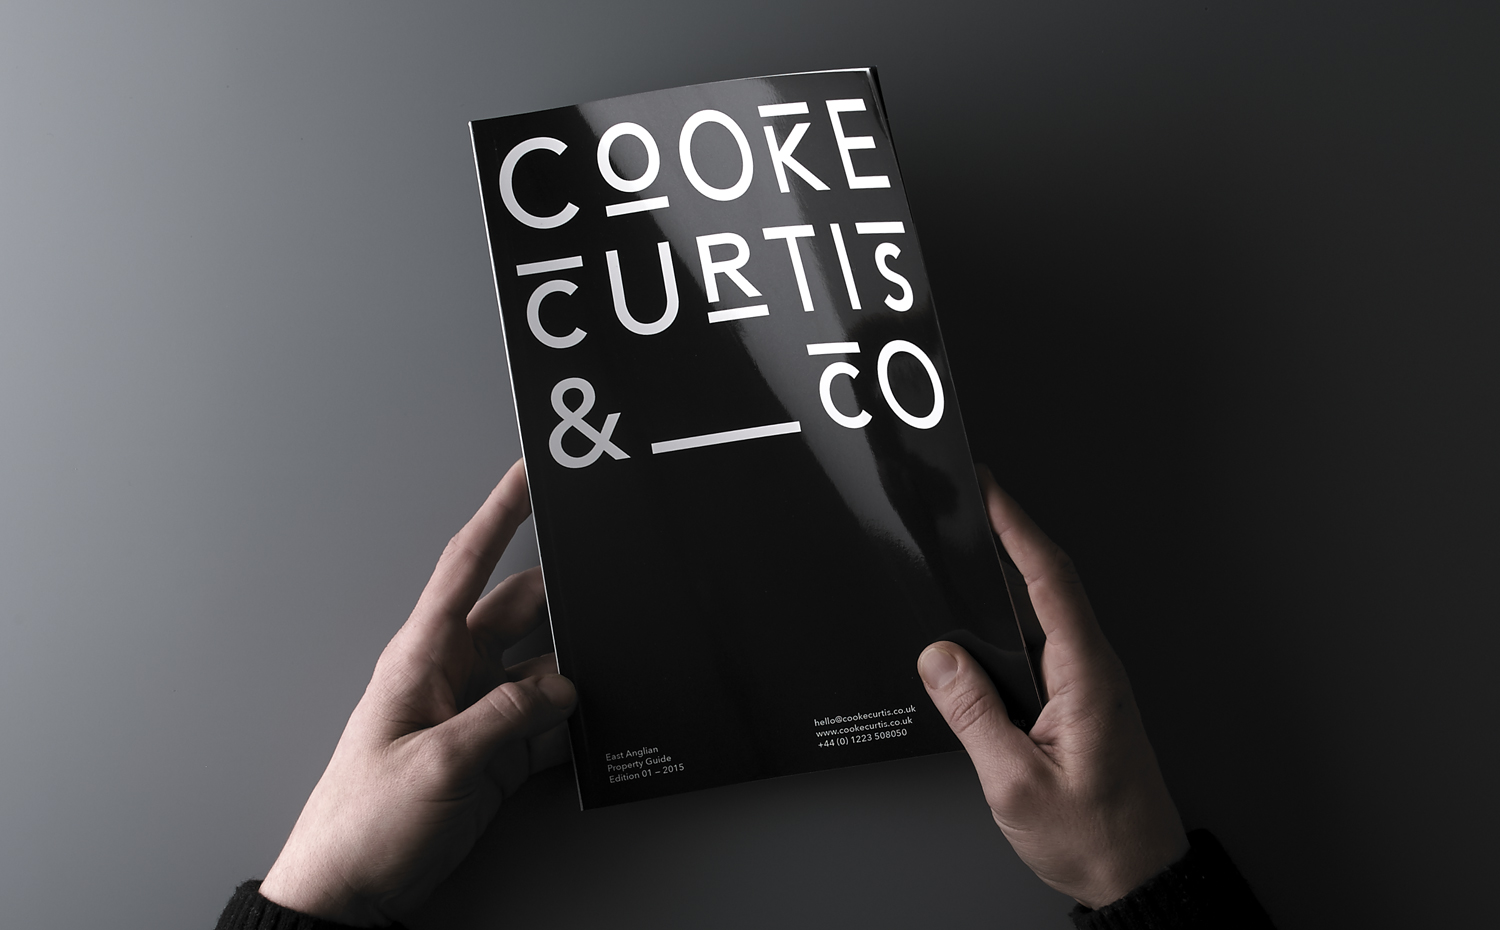 Brand identity and magazine cover for UK estate agent Cooke Curtis & Co. by graphic design studio The District, United Kingdom